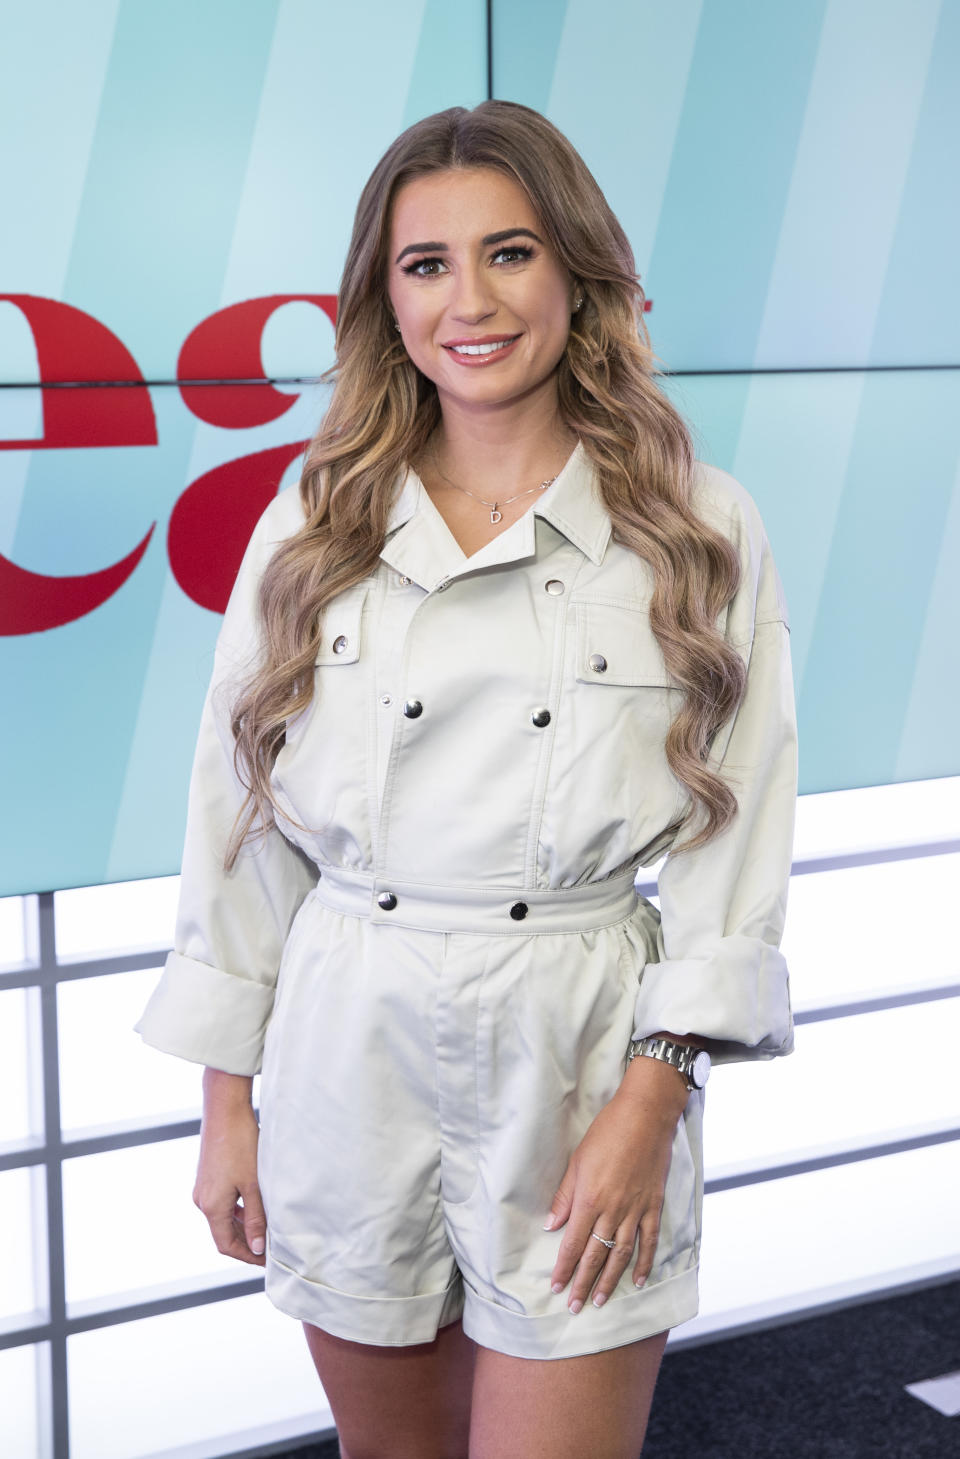 LONDON, ENGLAND - OCTOBER 21: Dani Dyer visits Heat Radio on October 21, 2019 in London, England. (Photo by John Phillips/Getty Images)